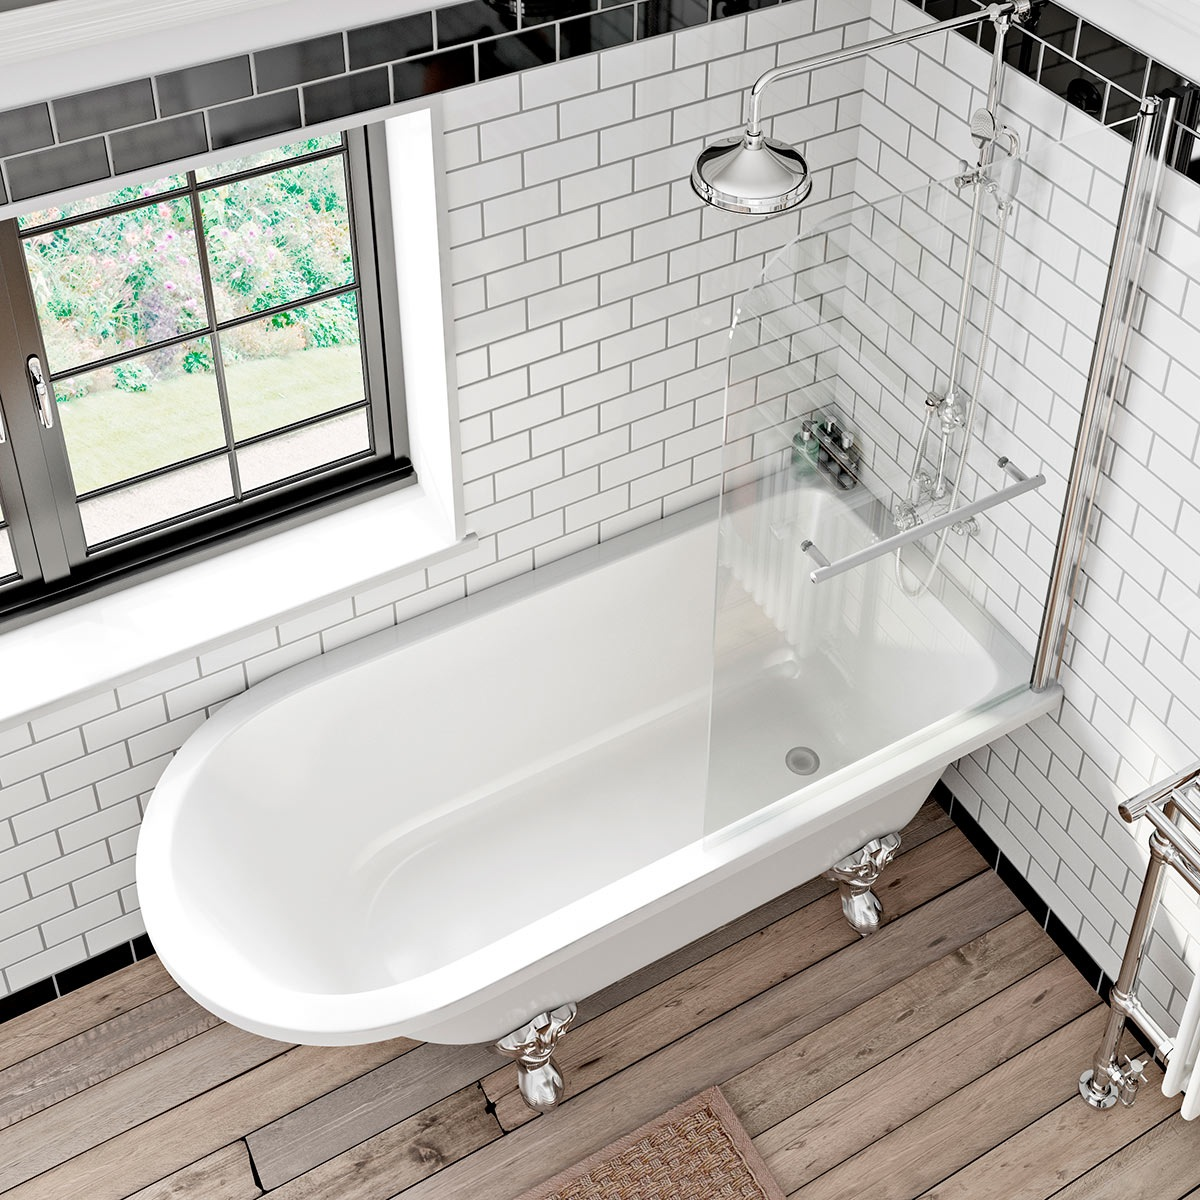 Introducing the new sally and shakespeare baths Shower over bath ideas